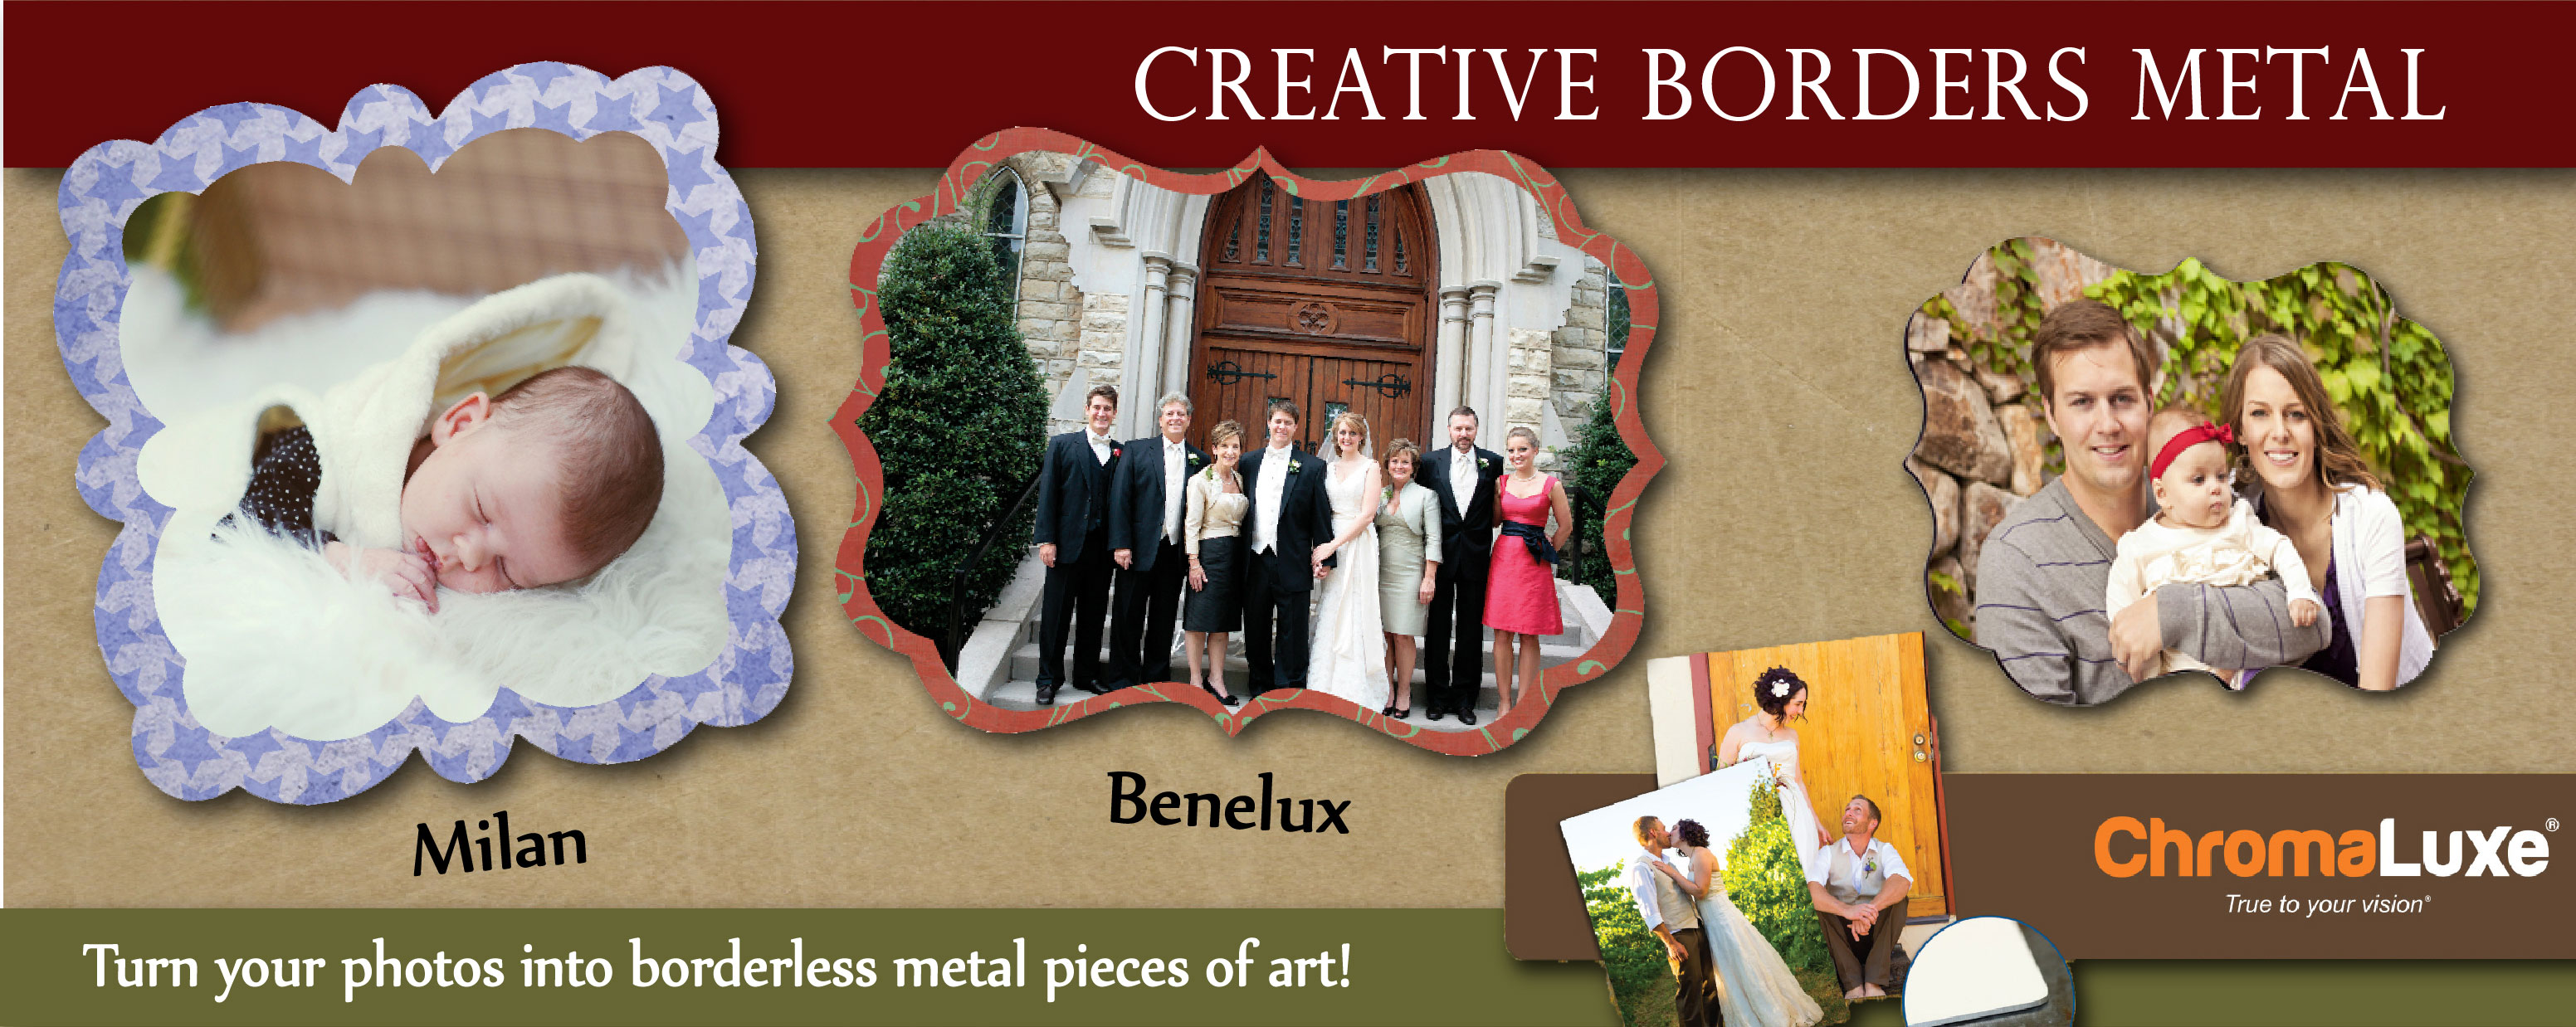 creative-border-metal-banner-01.jpg